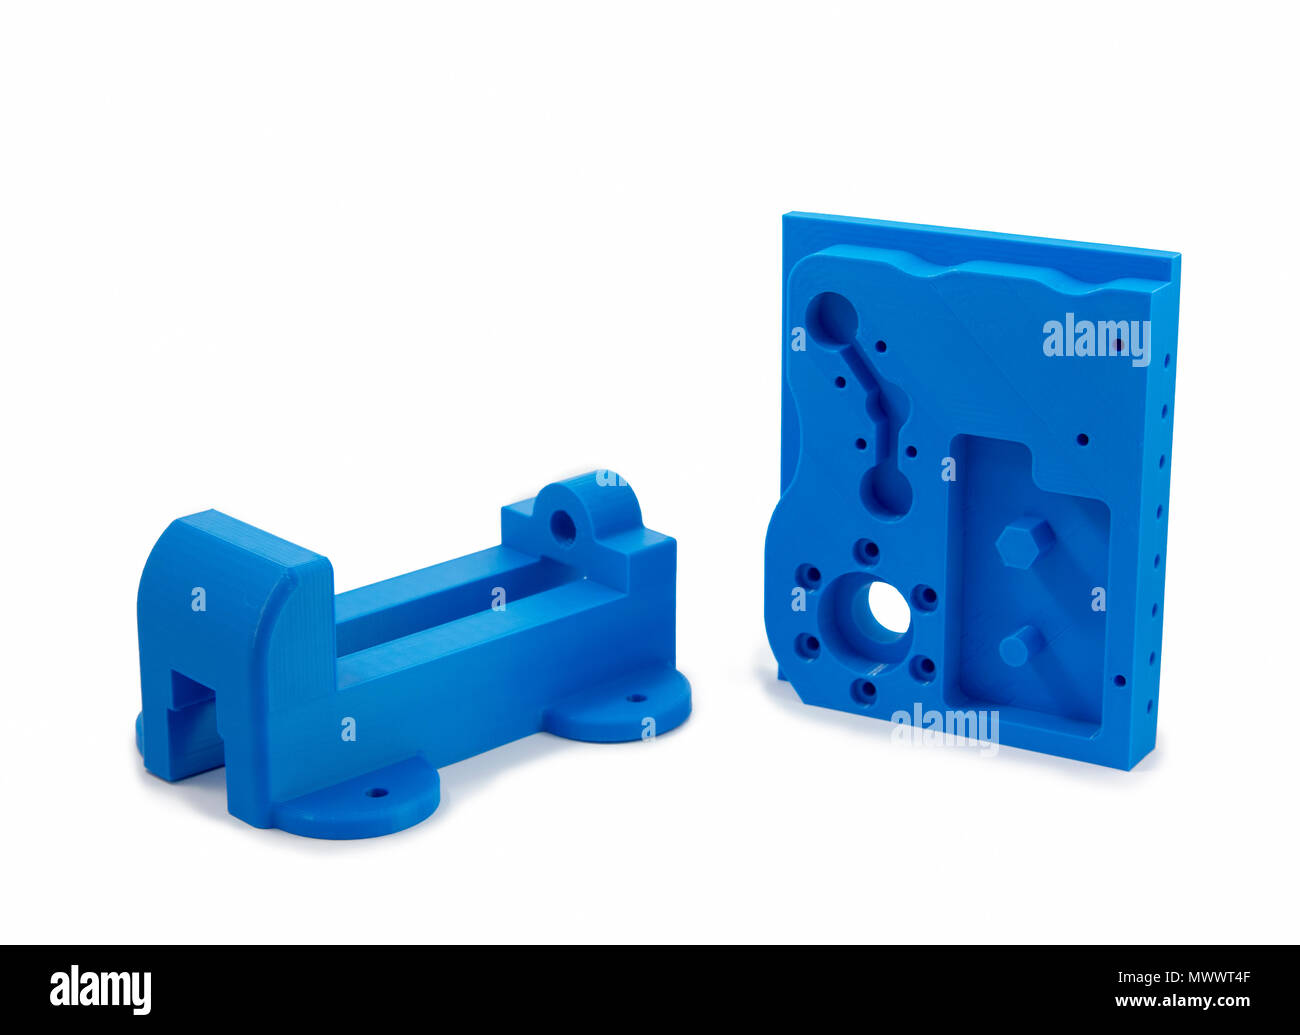 Industrial Machine Parts Printed With 3D Printer - Stock Image